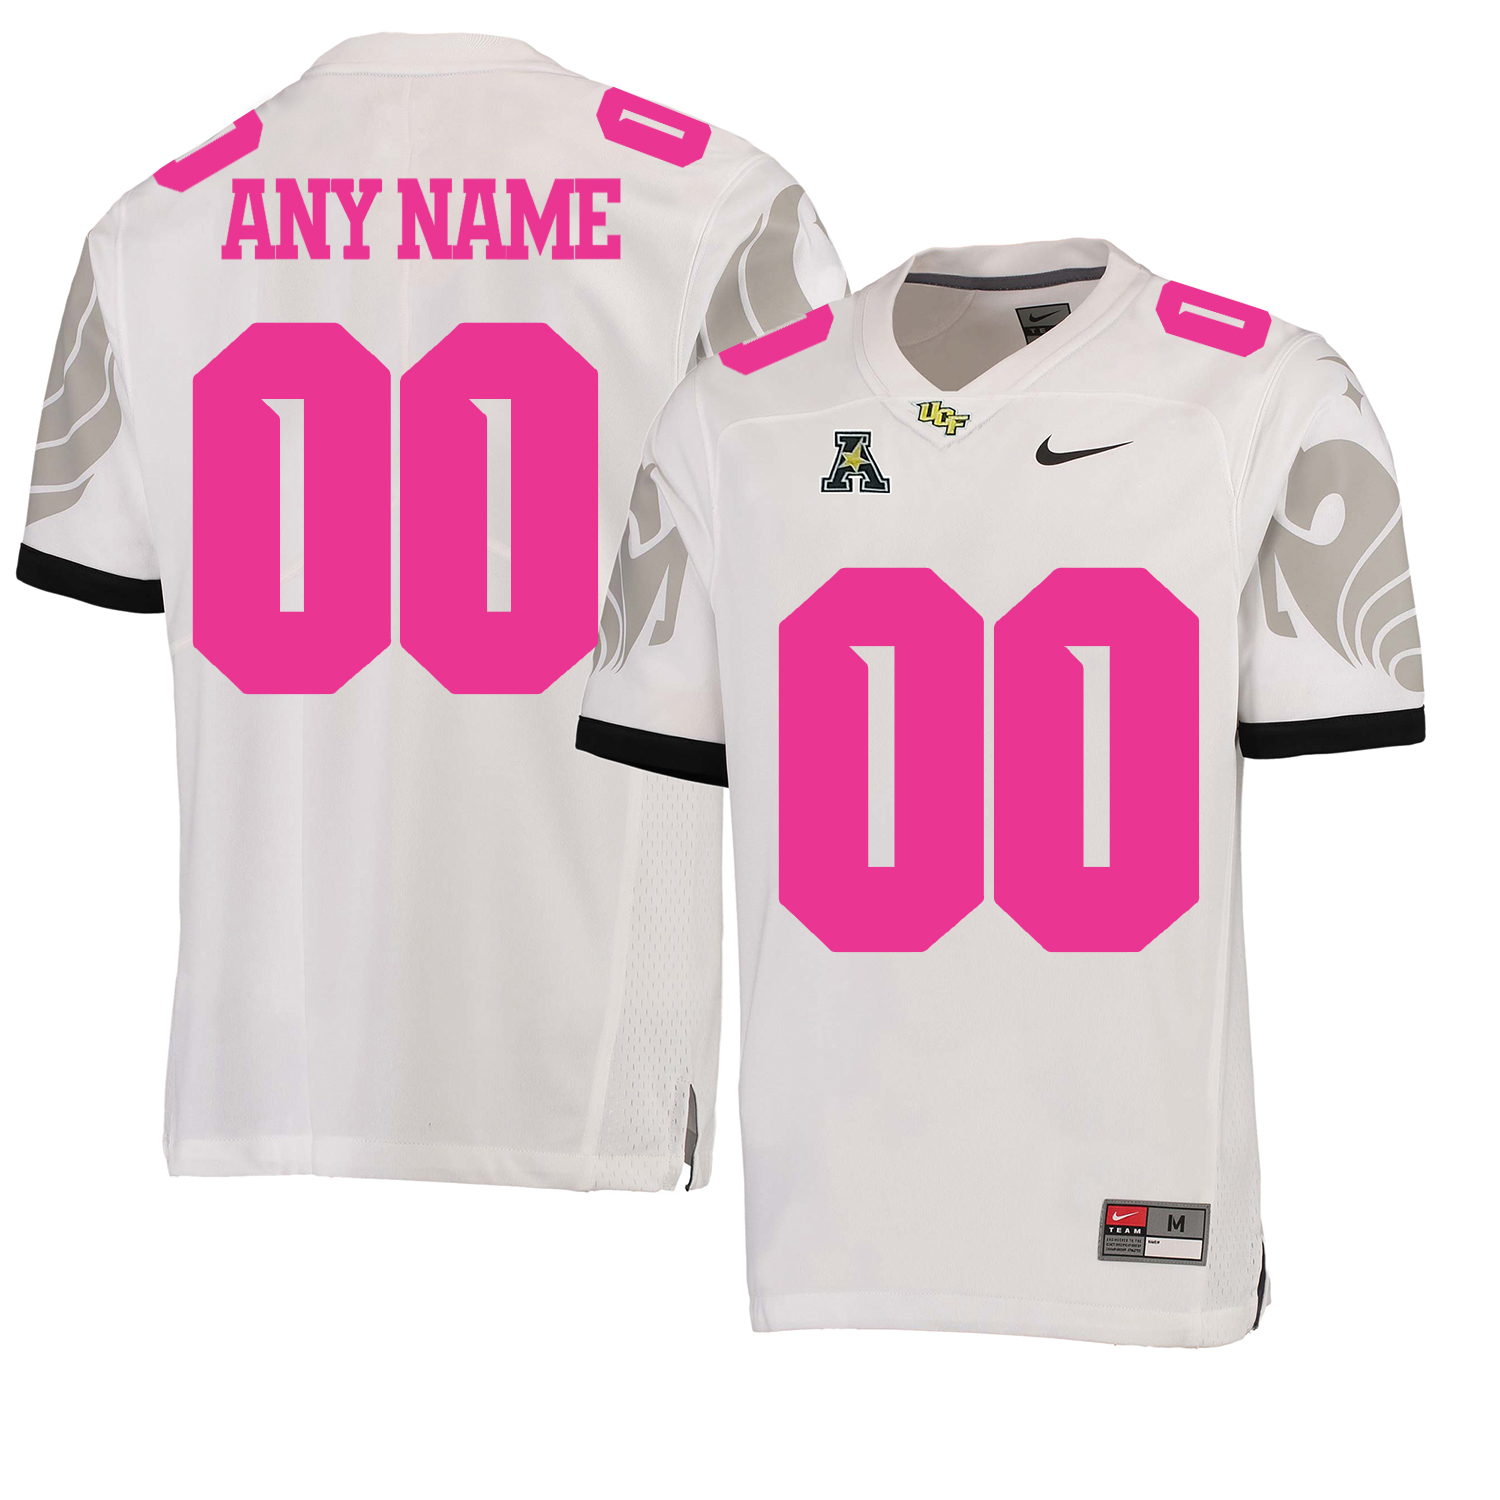 UCF Knights White 2018 Breast Cancer Awareness Men's Customized College Football Jersey